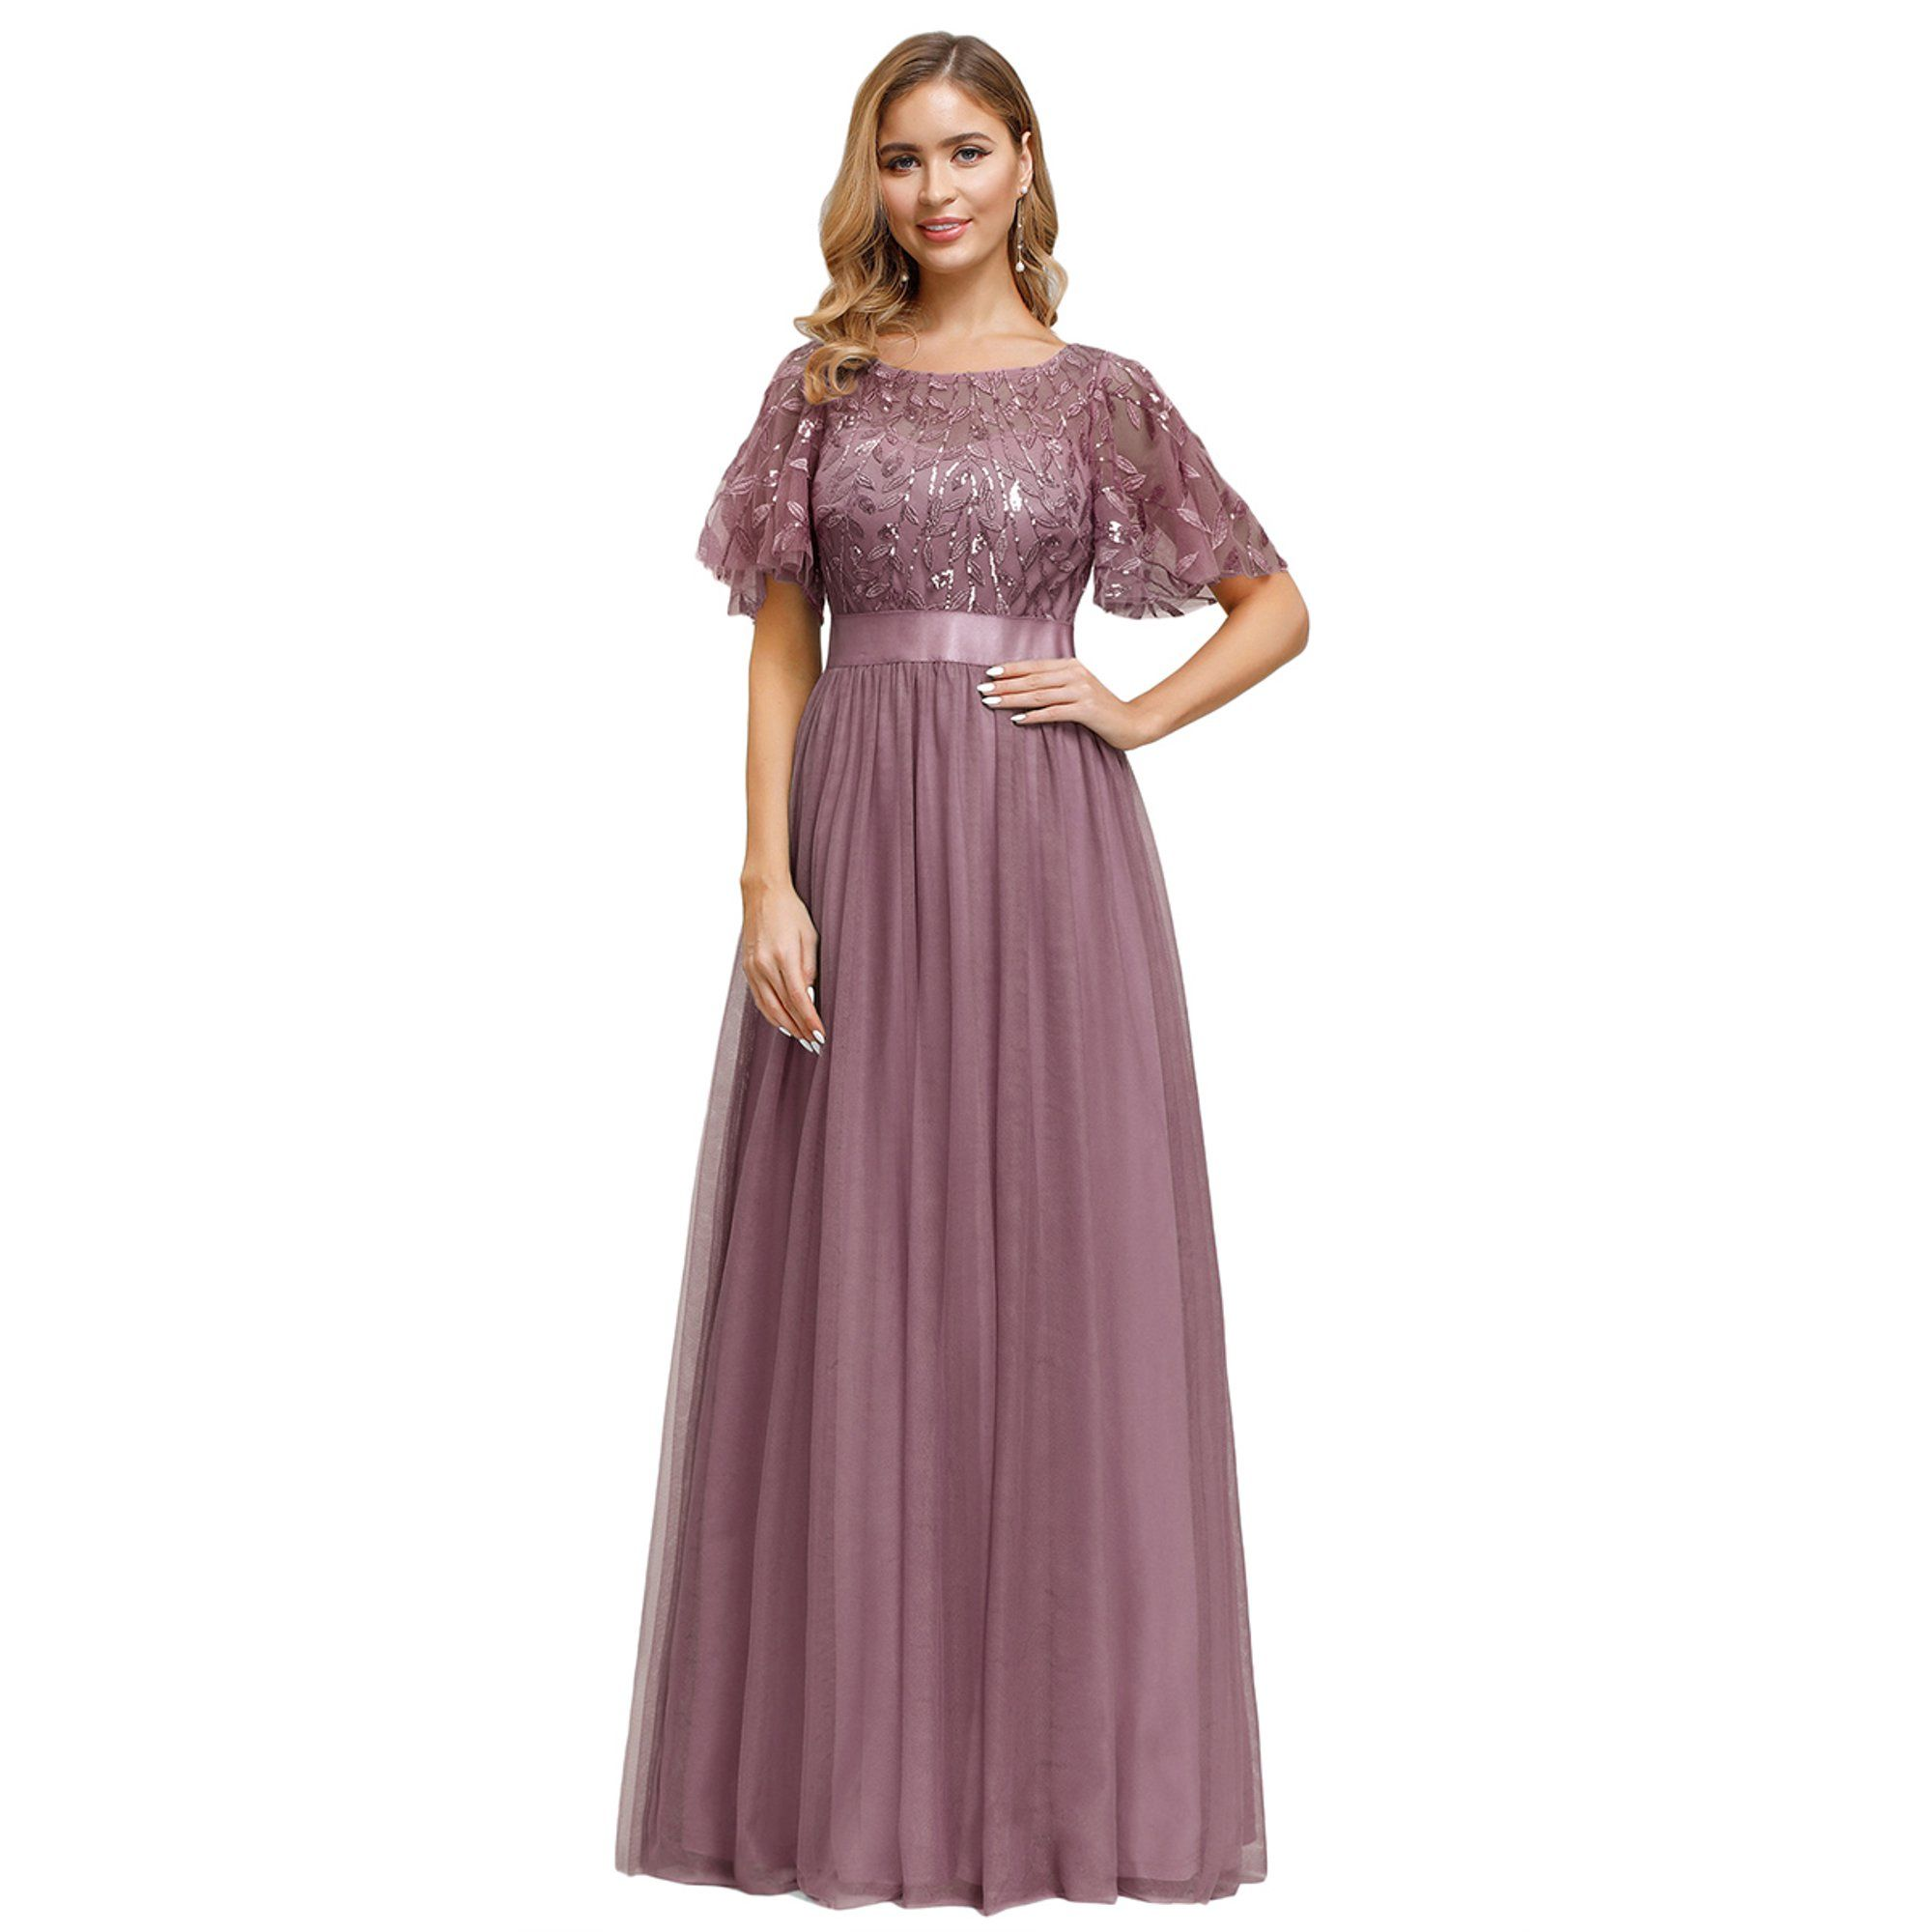 Ever Pretty Ever Pretty Womens Plus Size Mother Of The Bride Dresses For Women 00904 In 2021 Gowns Of Elegance Short Sleeves Dress Formal Formal Dresses With Sleeves [ 2000 x 2000 Pixel ]